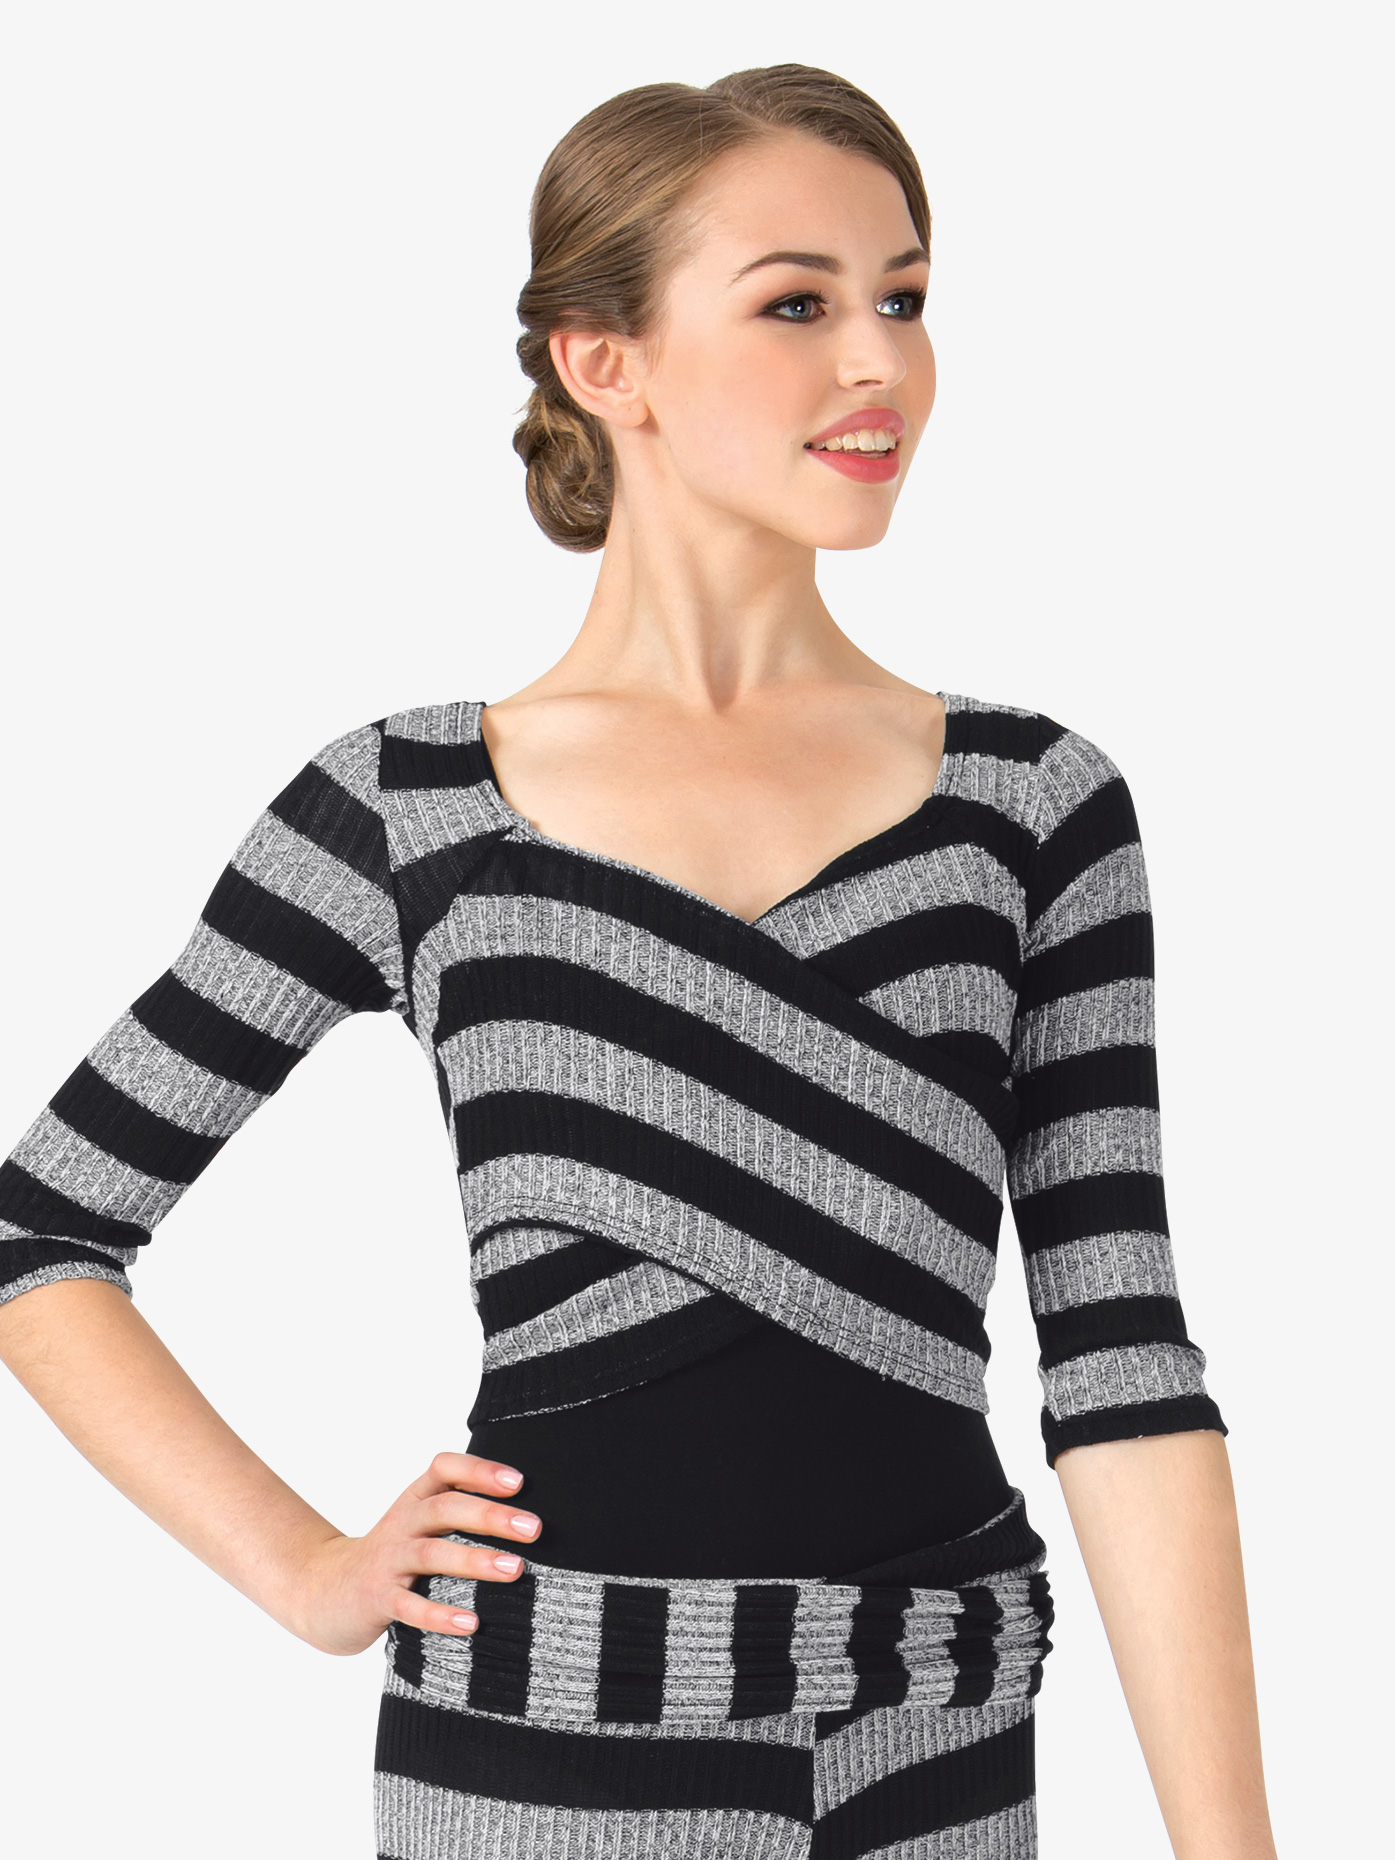 Body Wrappers Adult Striped Knit Wrap Front Warm Up Top 5173